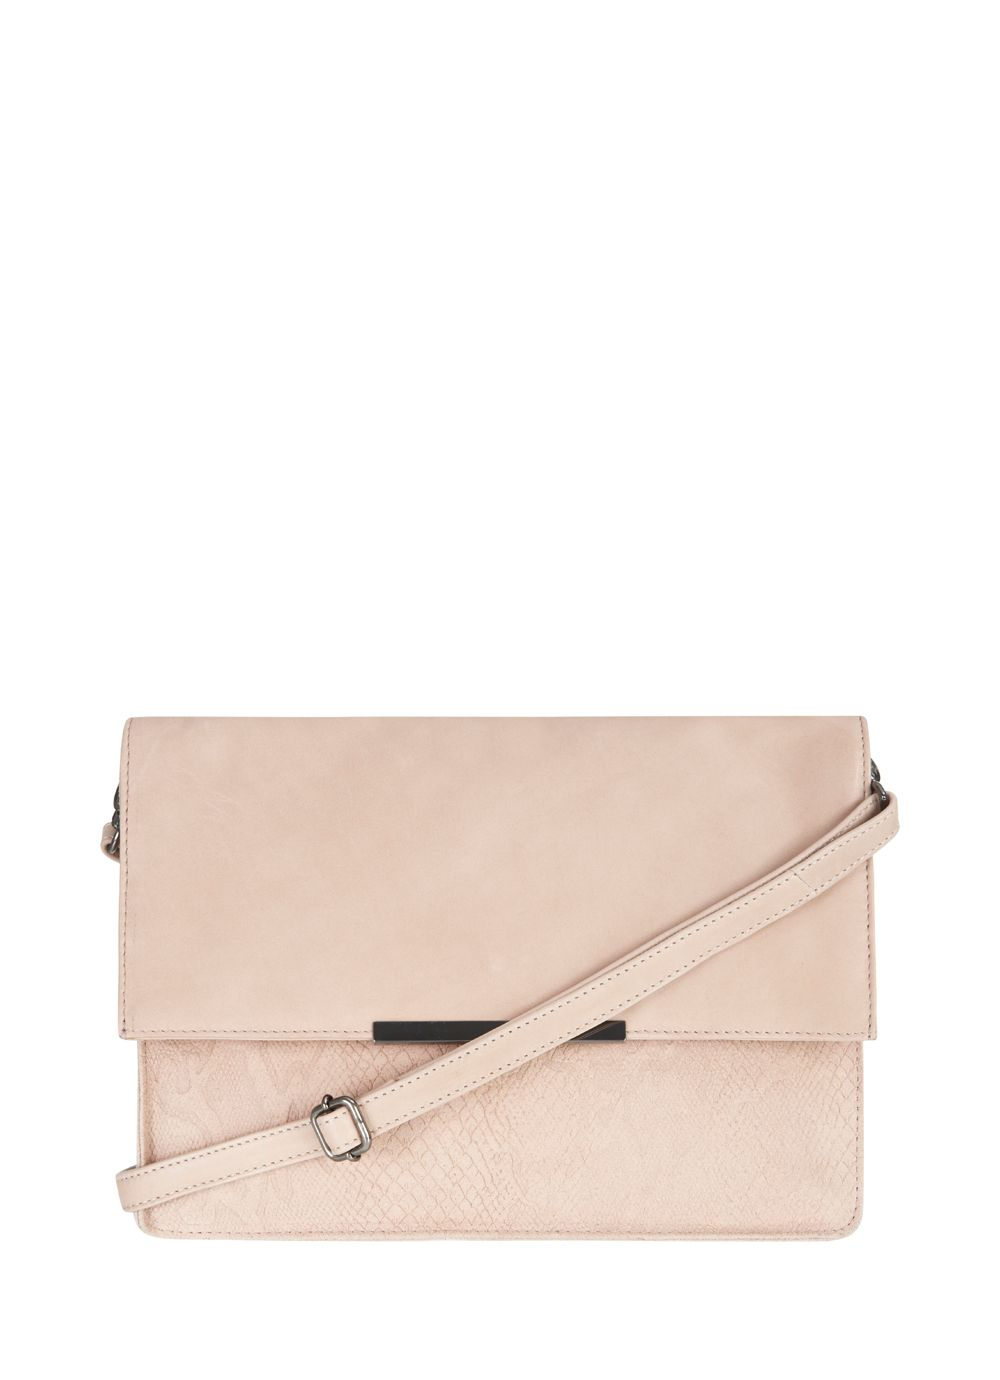 Foundation leather & snake suede clutch bag